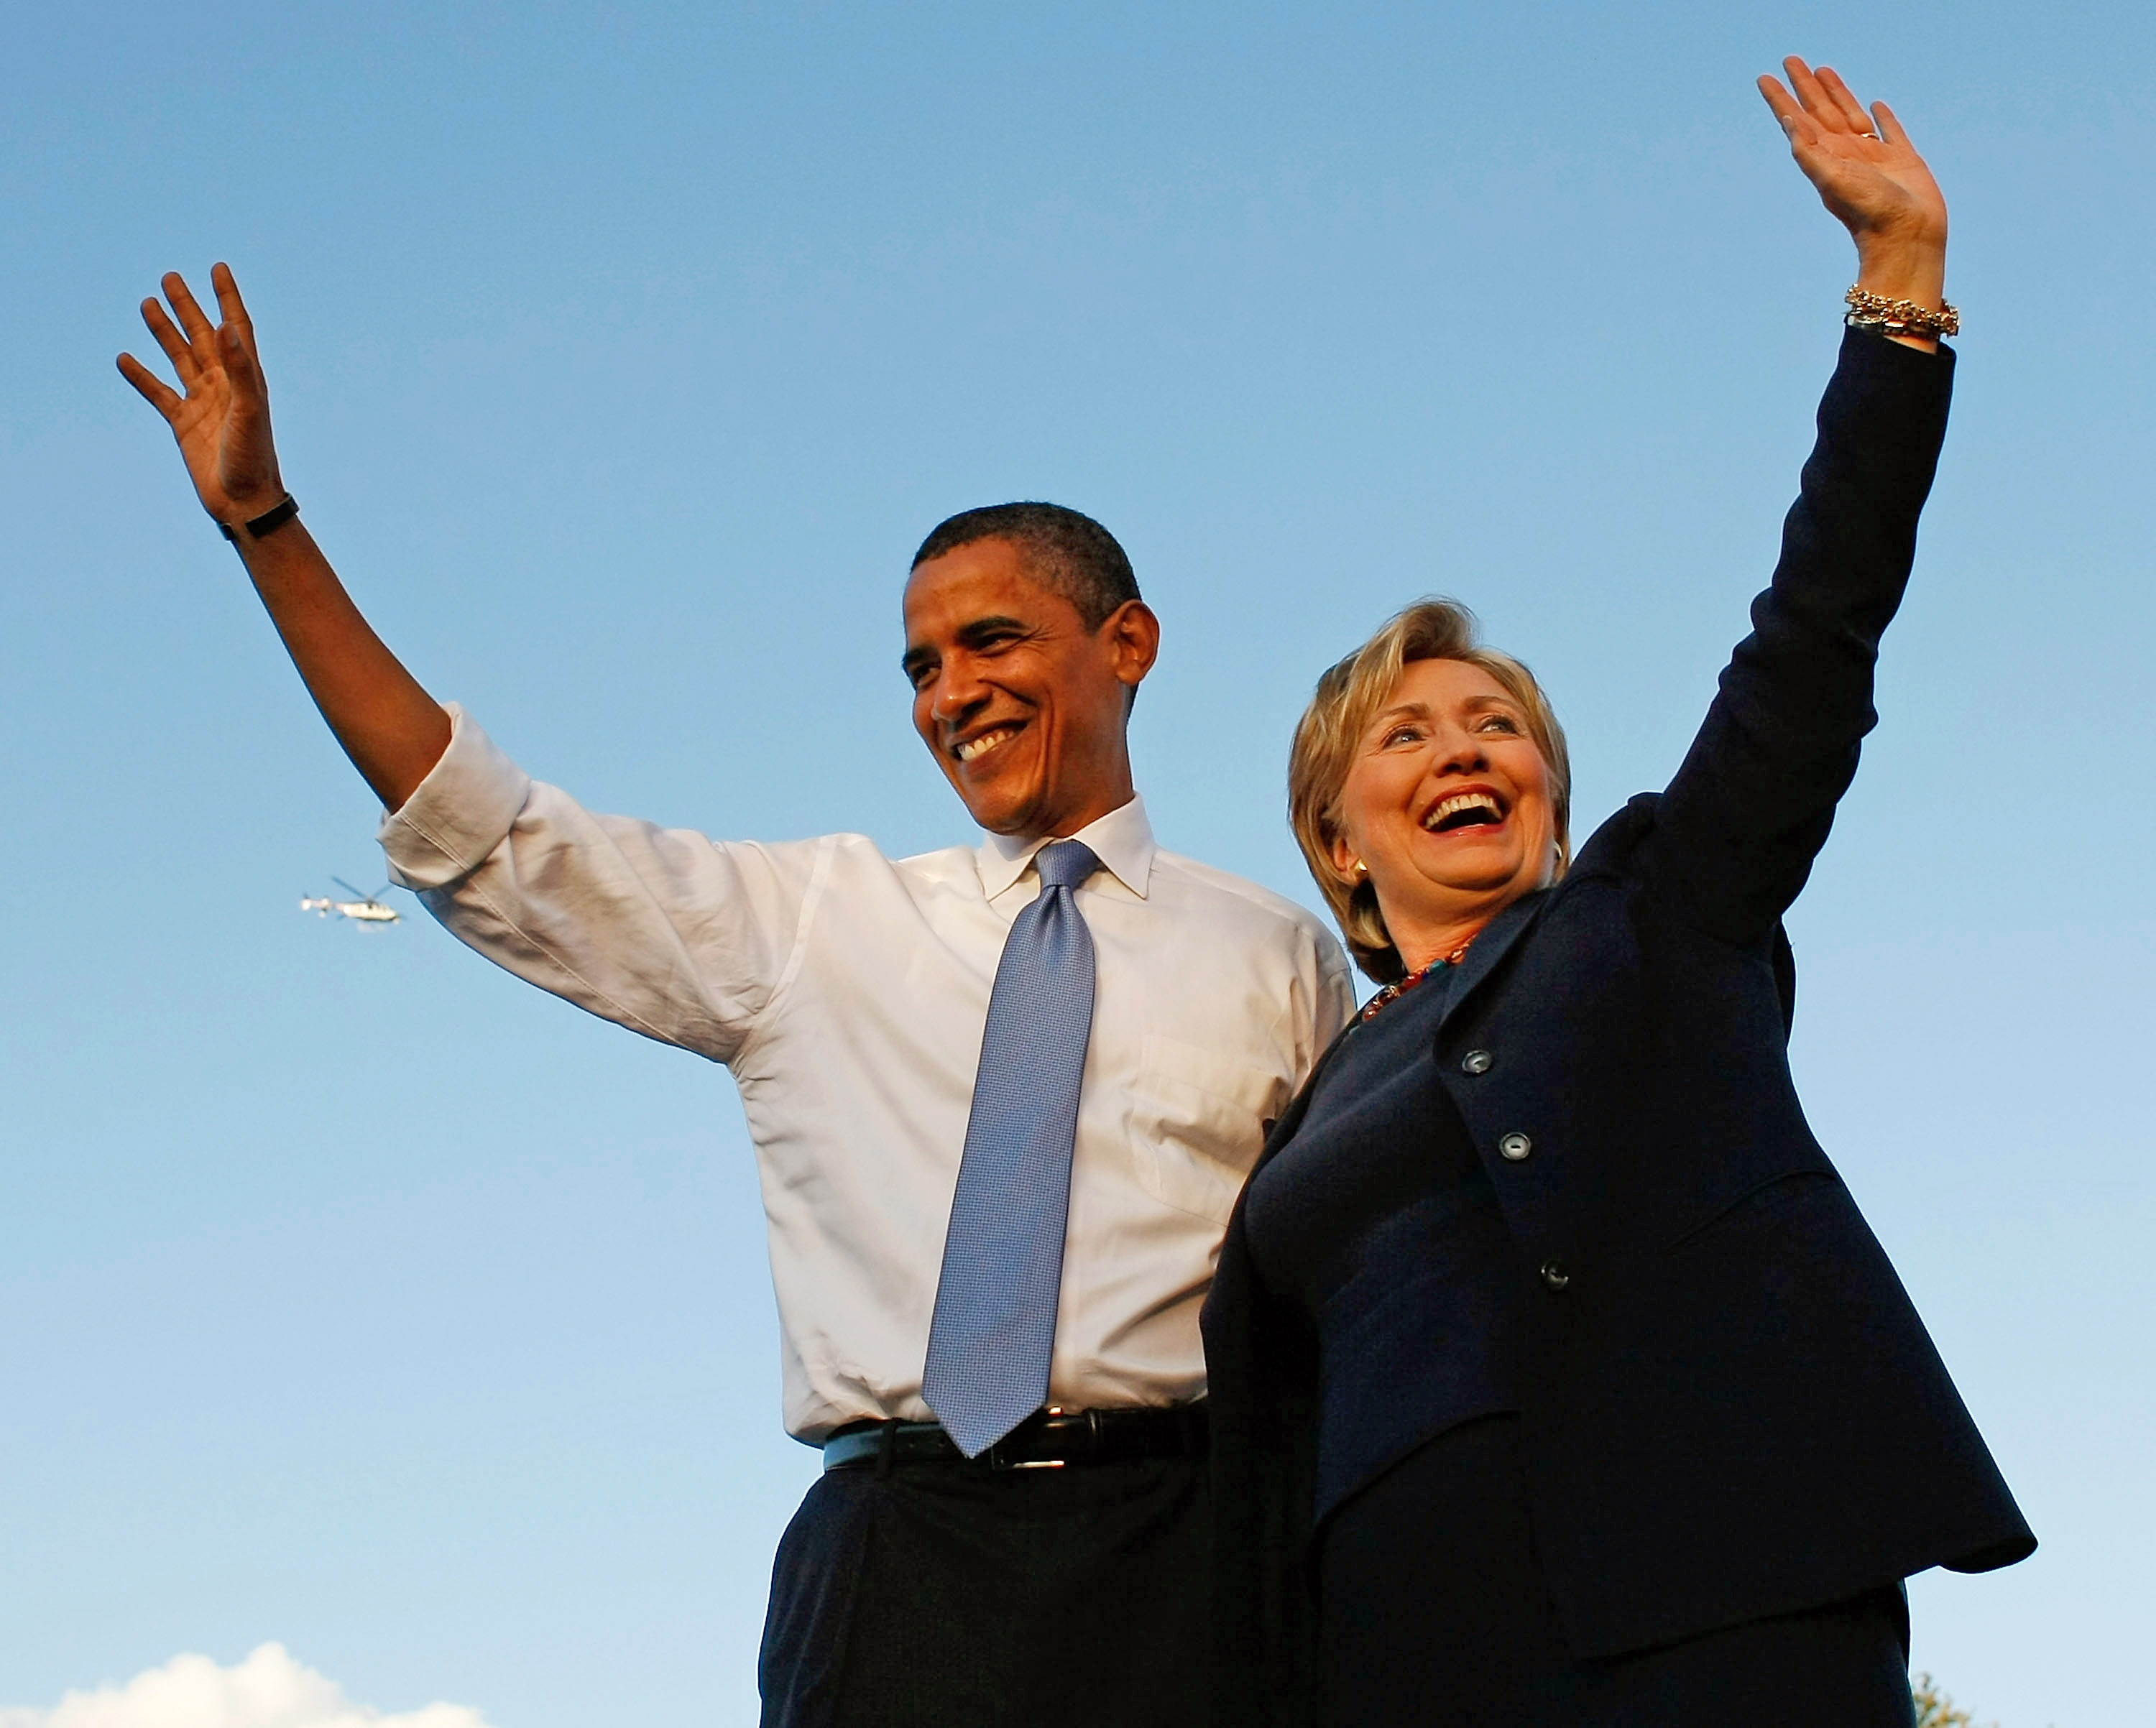 October 2008 Democratic presidential nominee Barack Obama and Hillary Clinton attend a campaign rally together on Oct. 20, 2008 in Orlando, Fla.